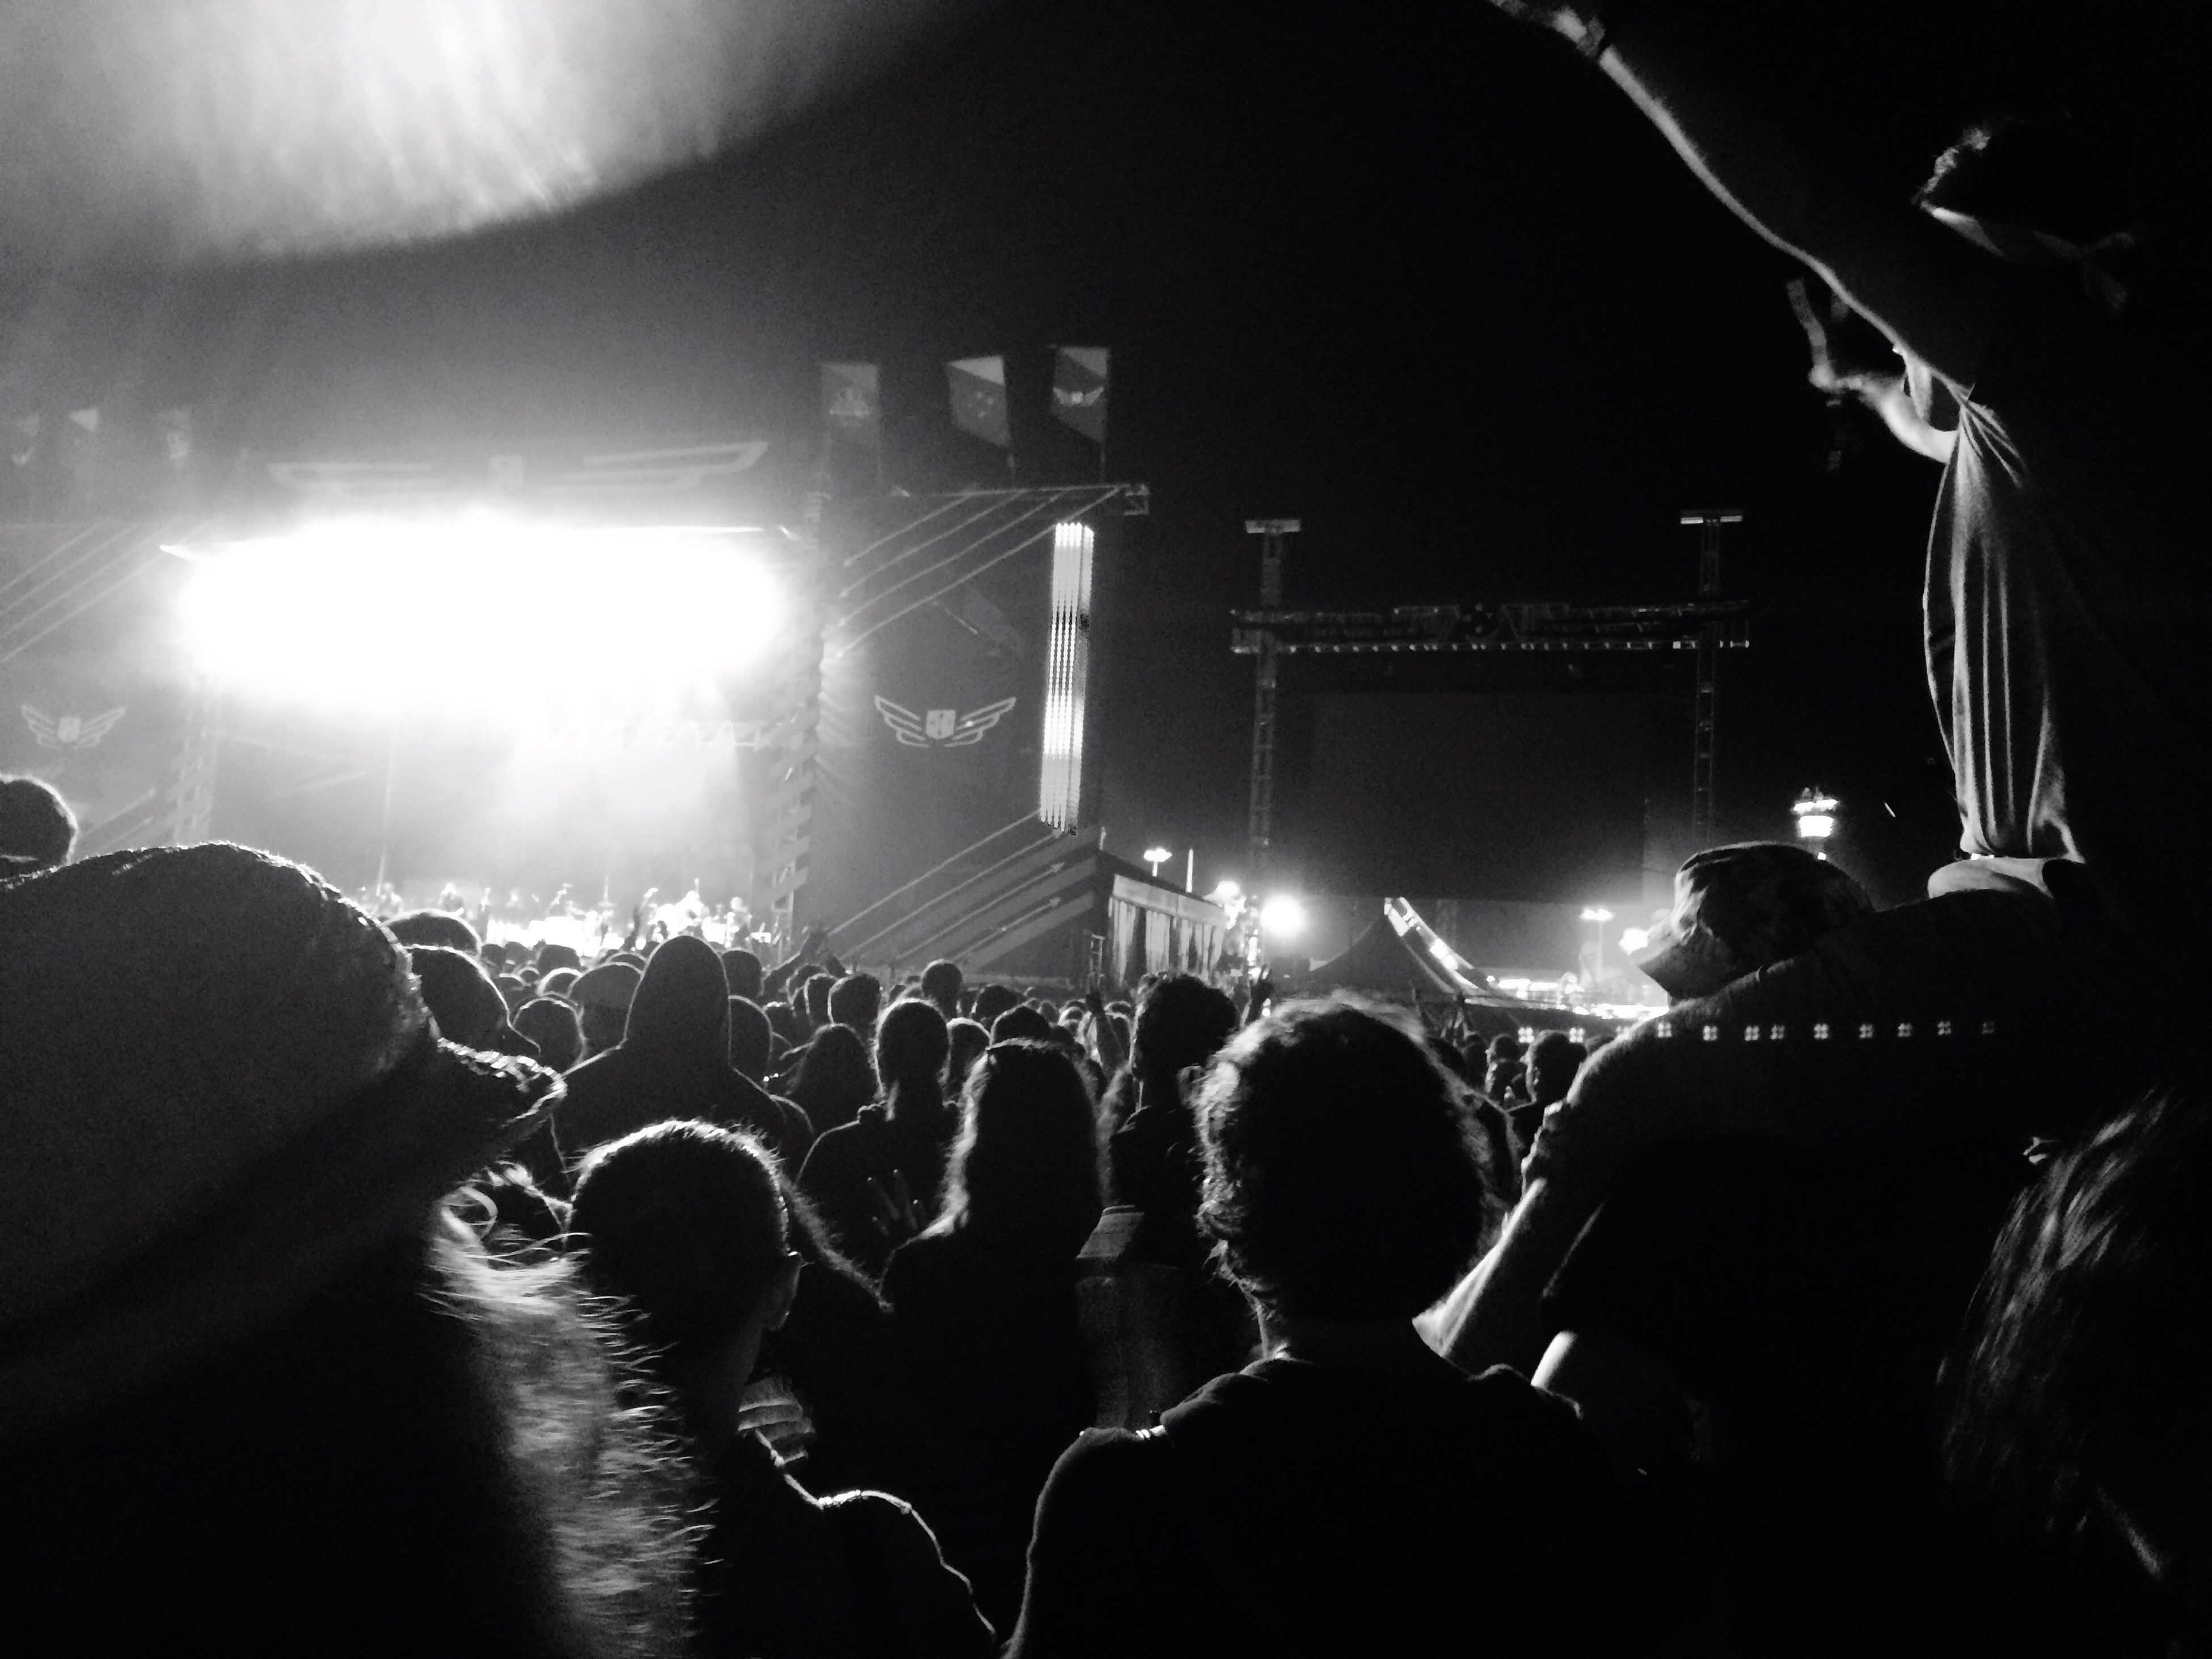 large group of people, crowd, illuminated, lifestyles, music, men, night, arts culture and entertainment, nightlife, leisure activity, person, event, performance, music festival, enjoyment, togetherness, concert, popular music concert